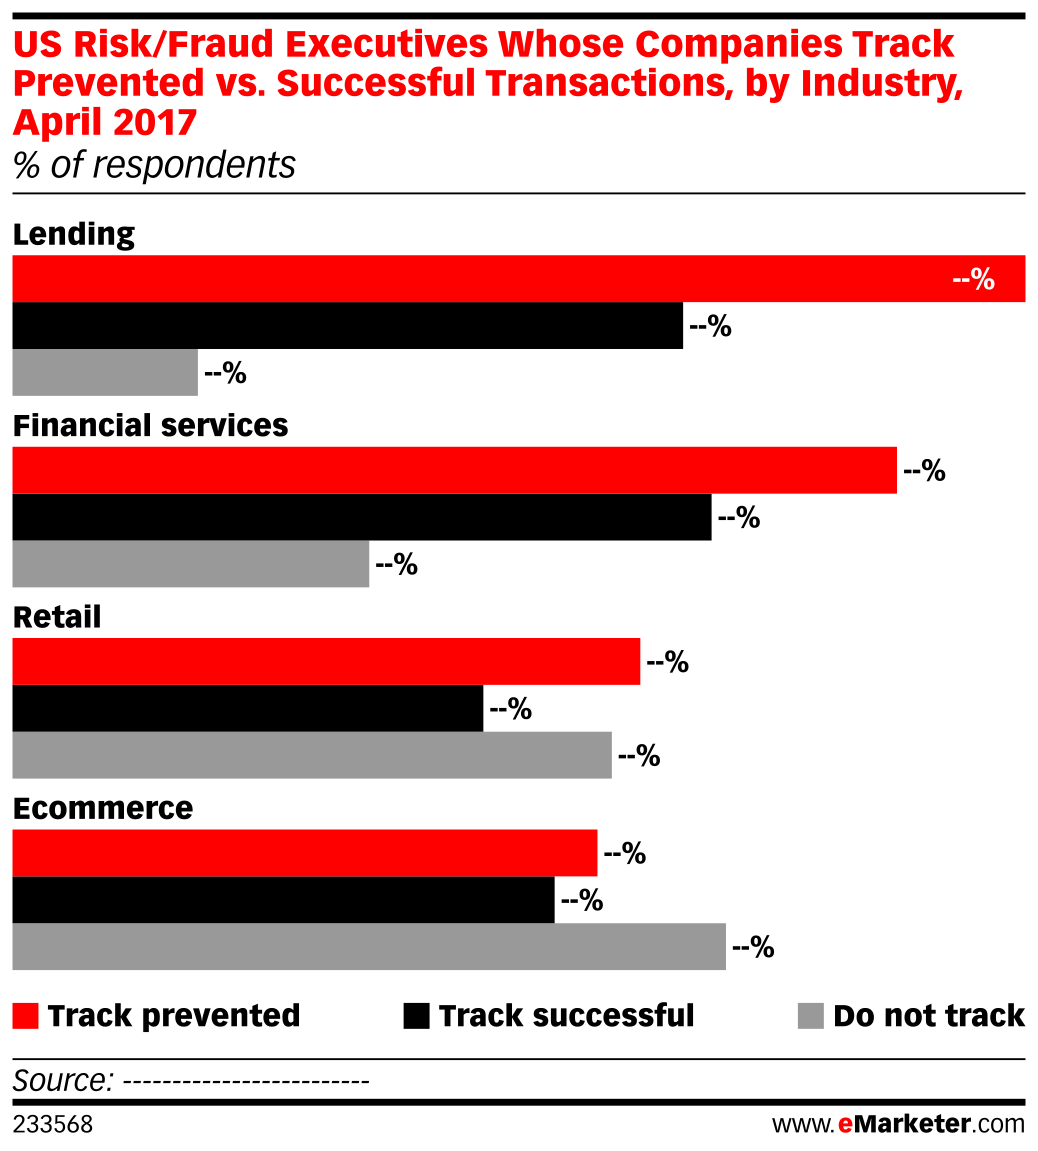 US Risk/Fraud Executives Whose Companies Track Prevented vs. Successful Transactions, by Industry, April 2017 (% of respondents)